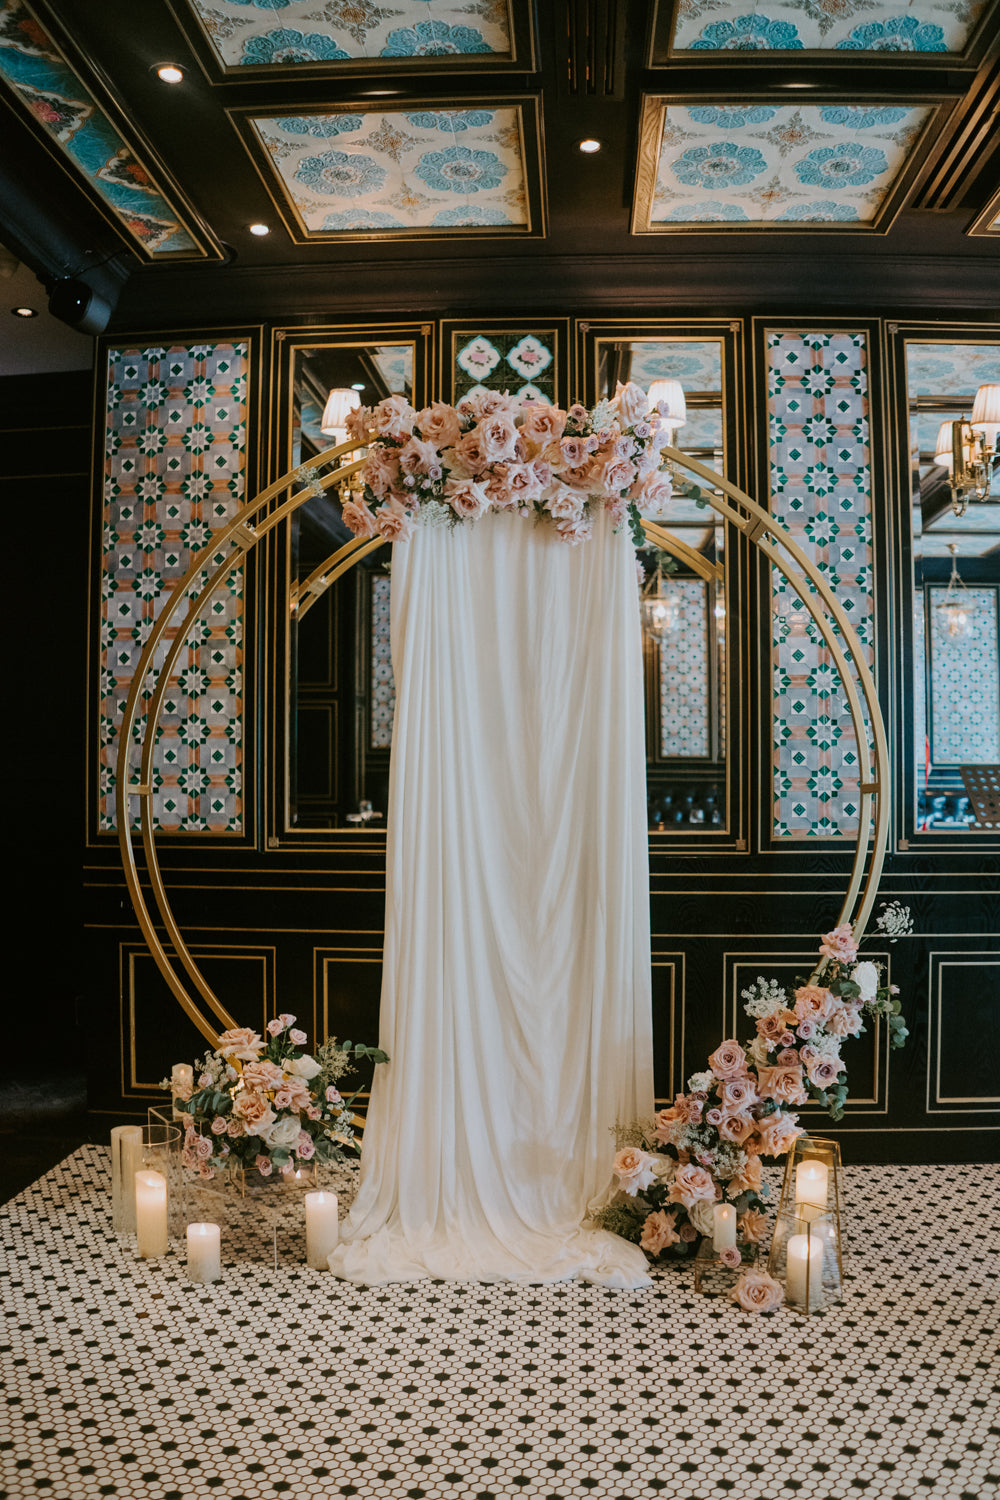 Wedding circle stand in popular gold for wedding proposal rental Singapore at Violet Oon Ion Orchard